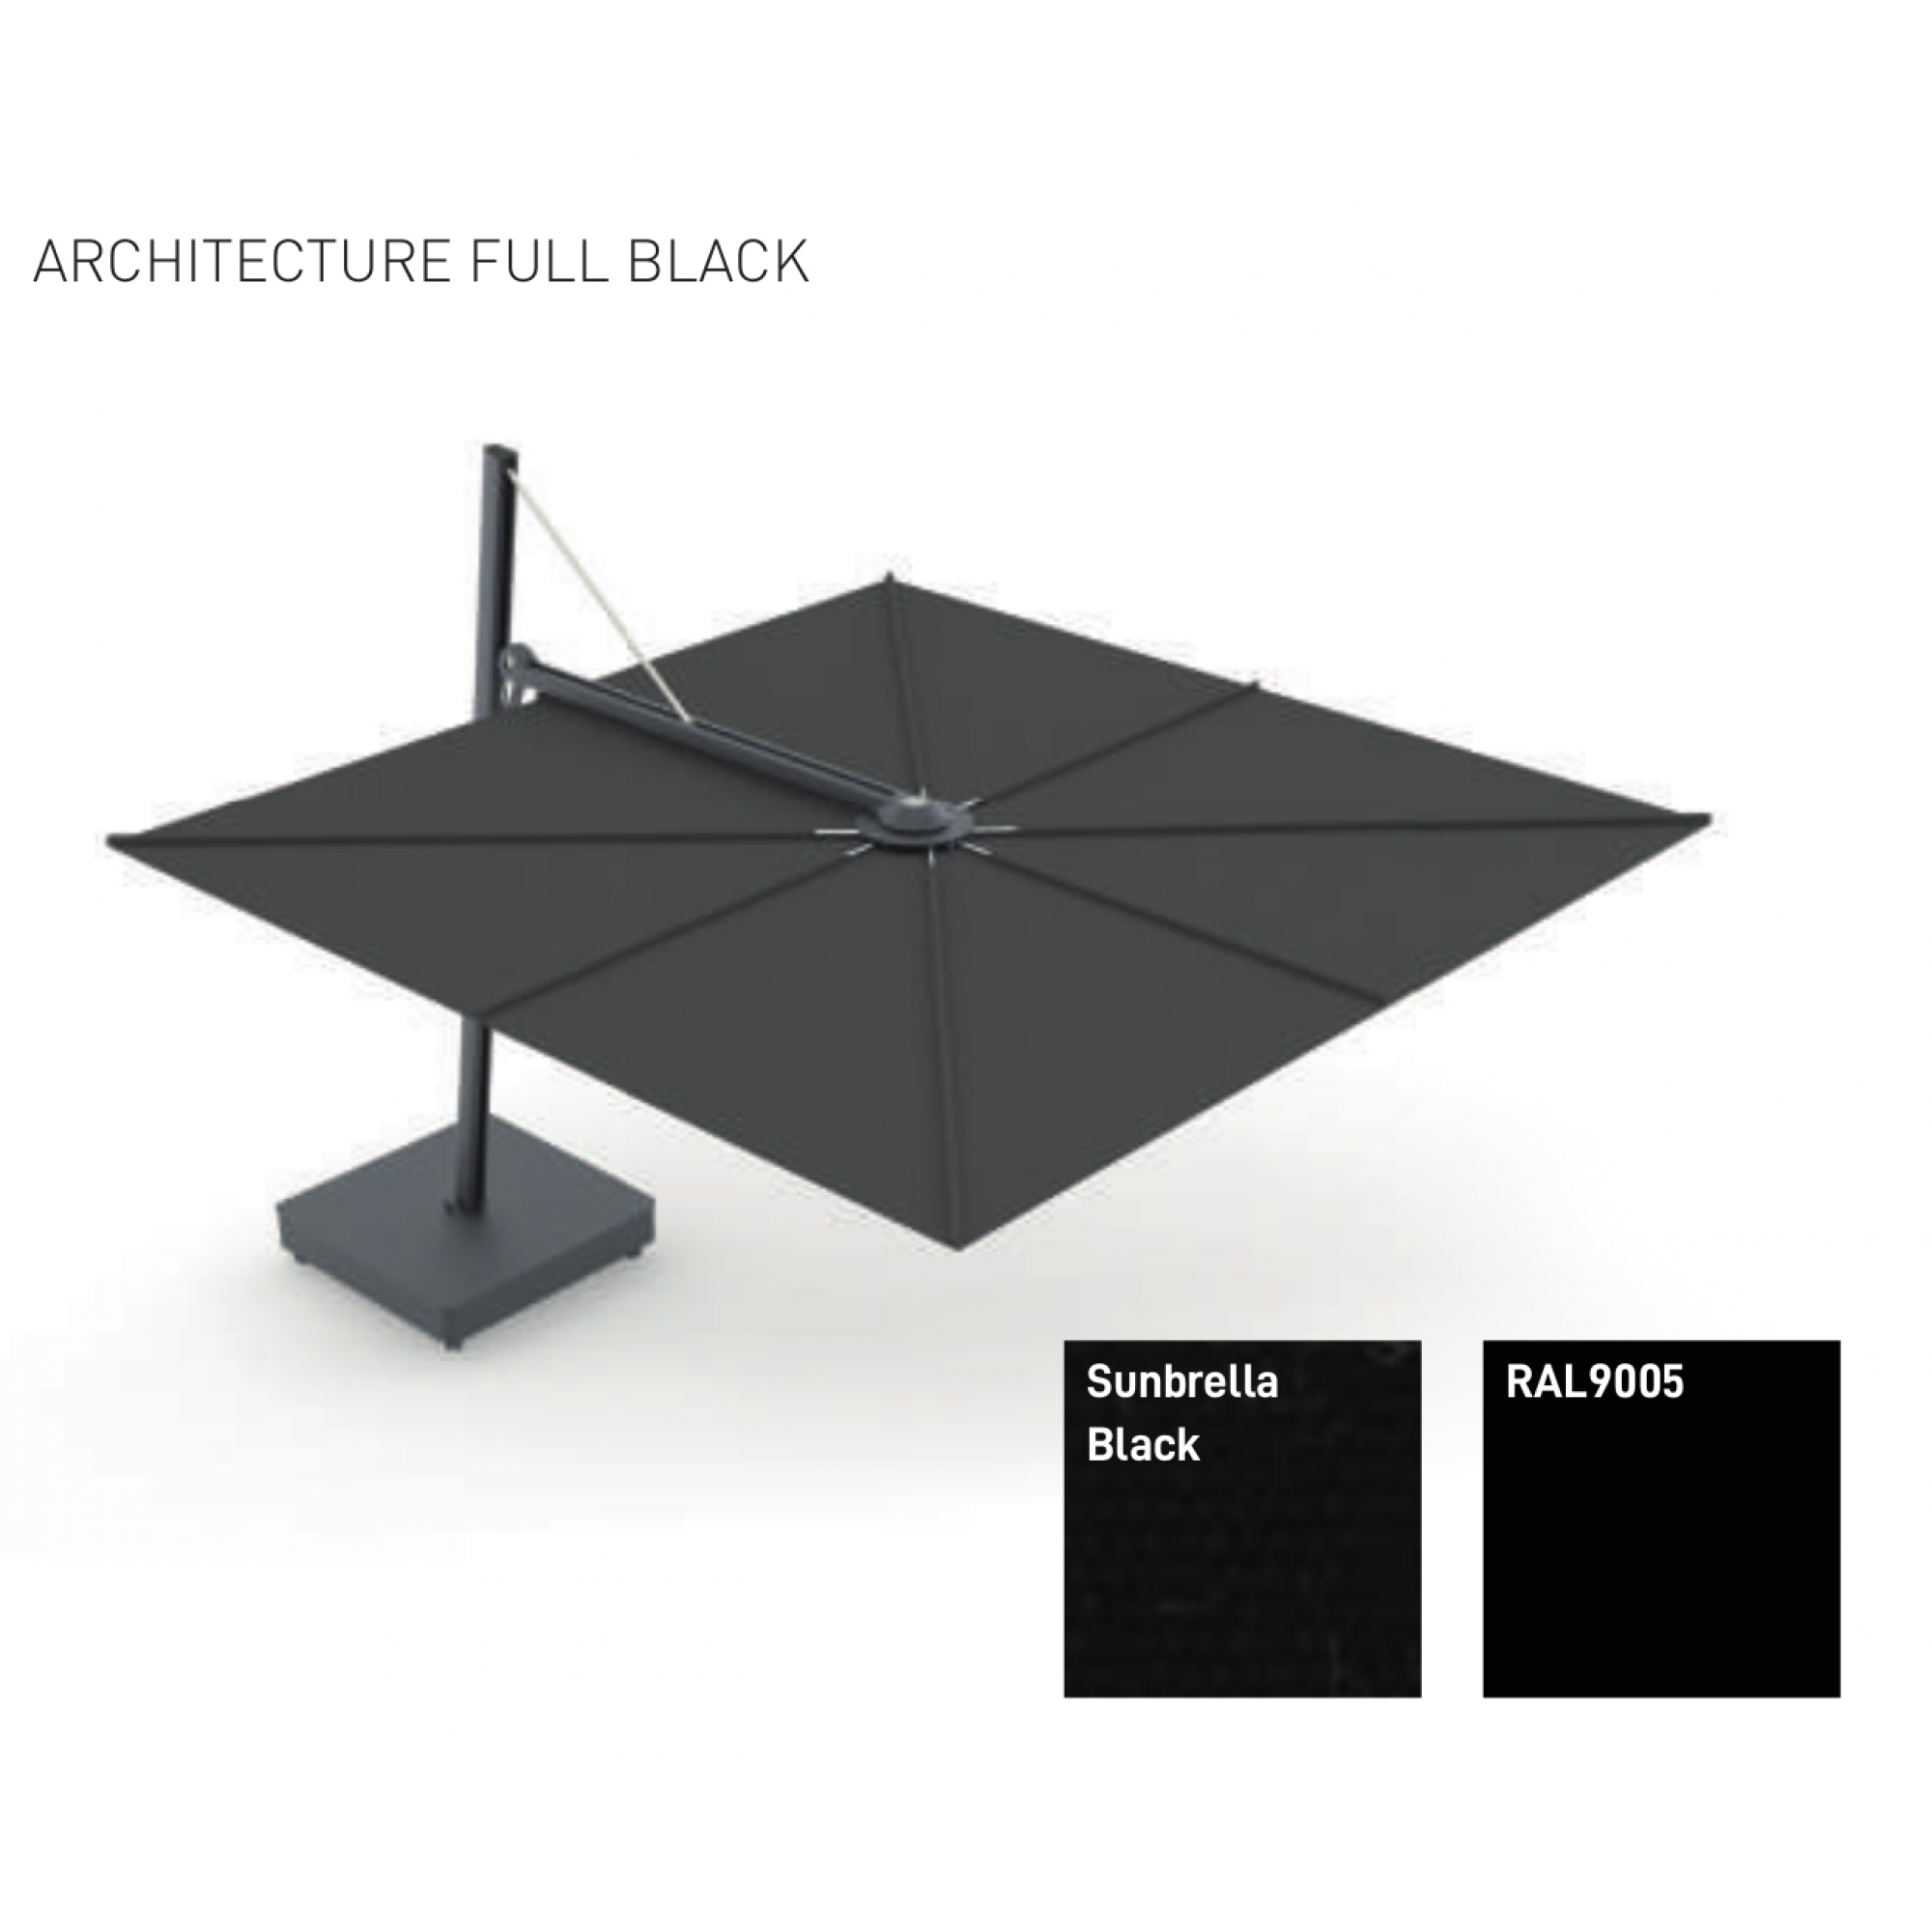 SPECTRA UX ARCHITECTURE FULL BLACK, by UMBROSA